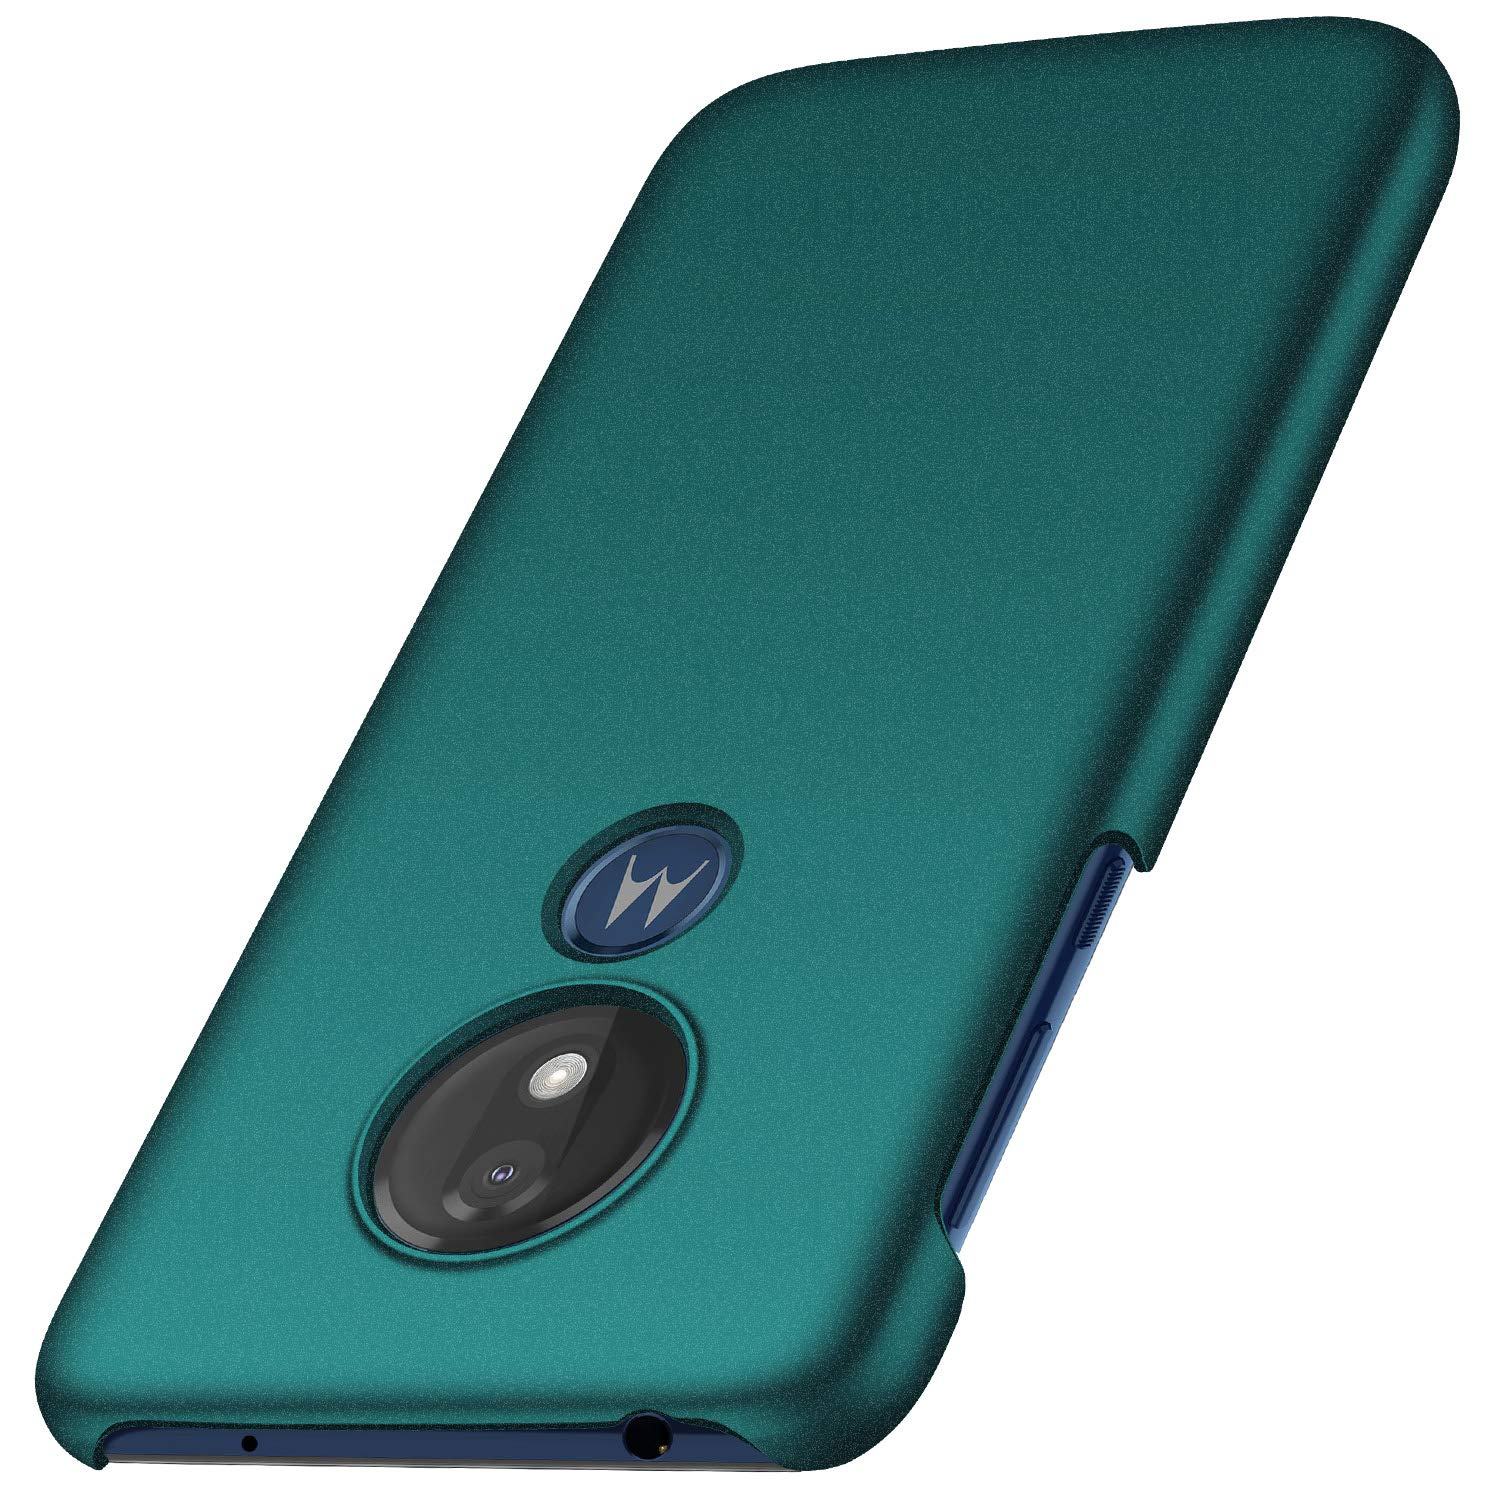 Anccer Compatible for Moto G7 Power Case, [Colorful Series] [Ultra-Thin] [Anti-Drop] Premium Material Slim Full Protection Cover For Moto G7 Power (Gravel Green)